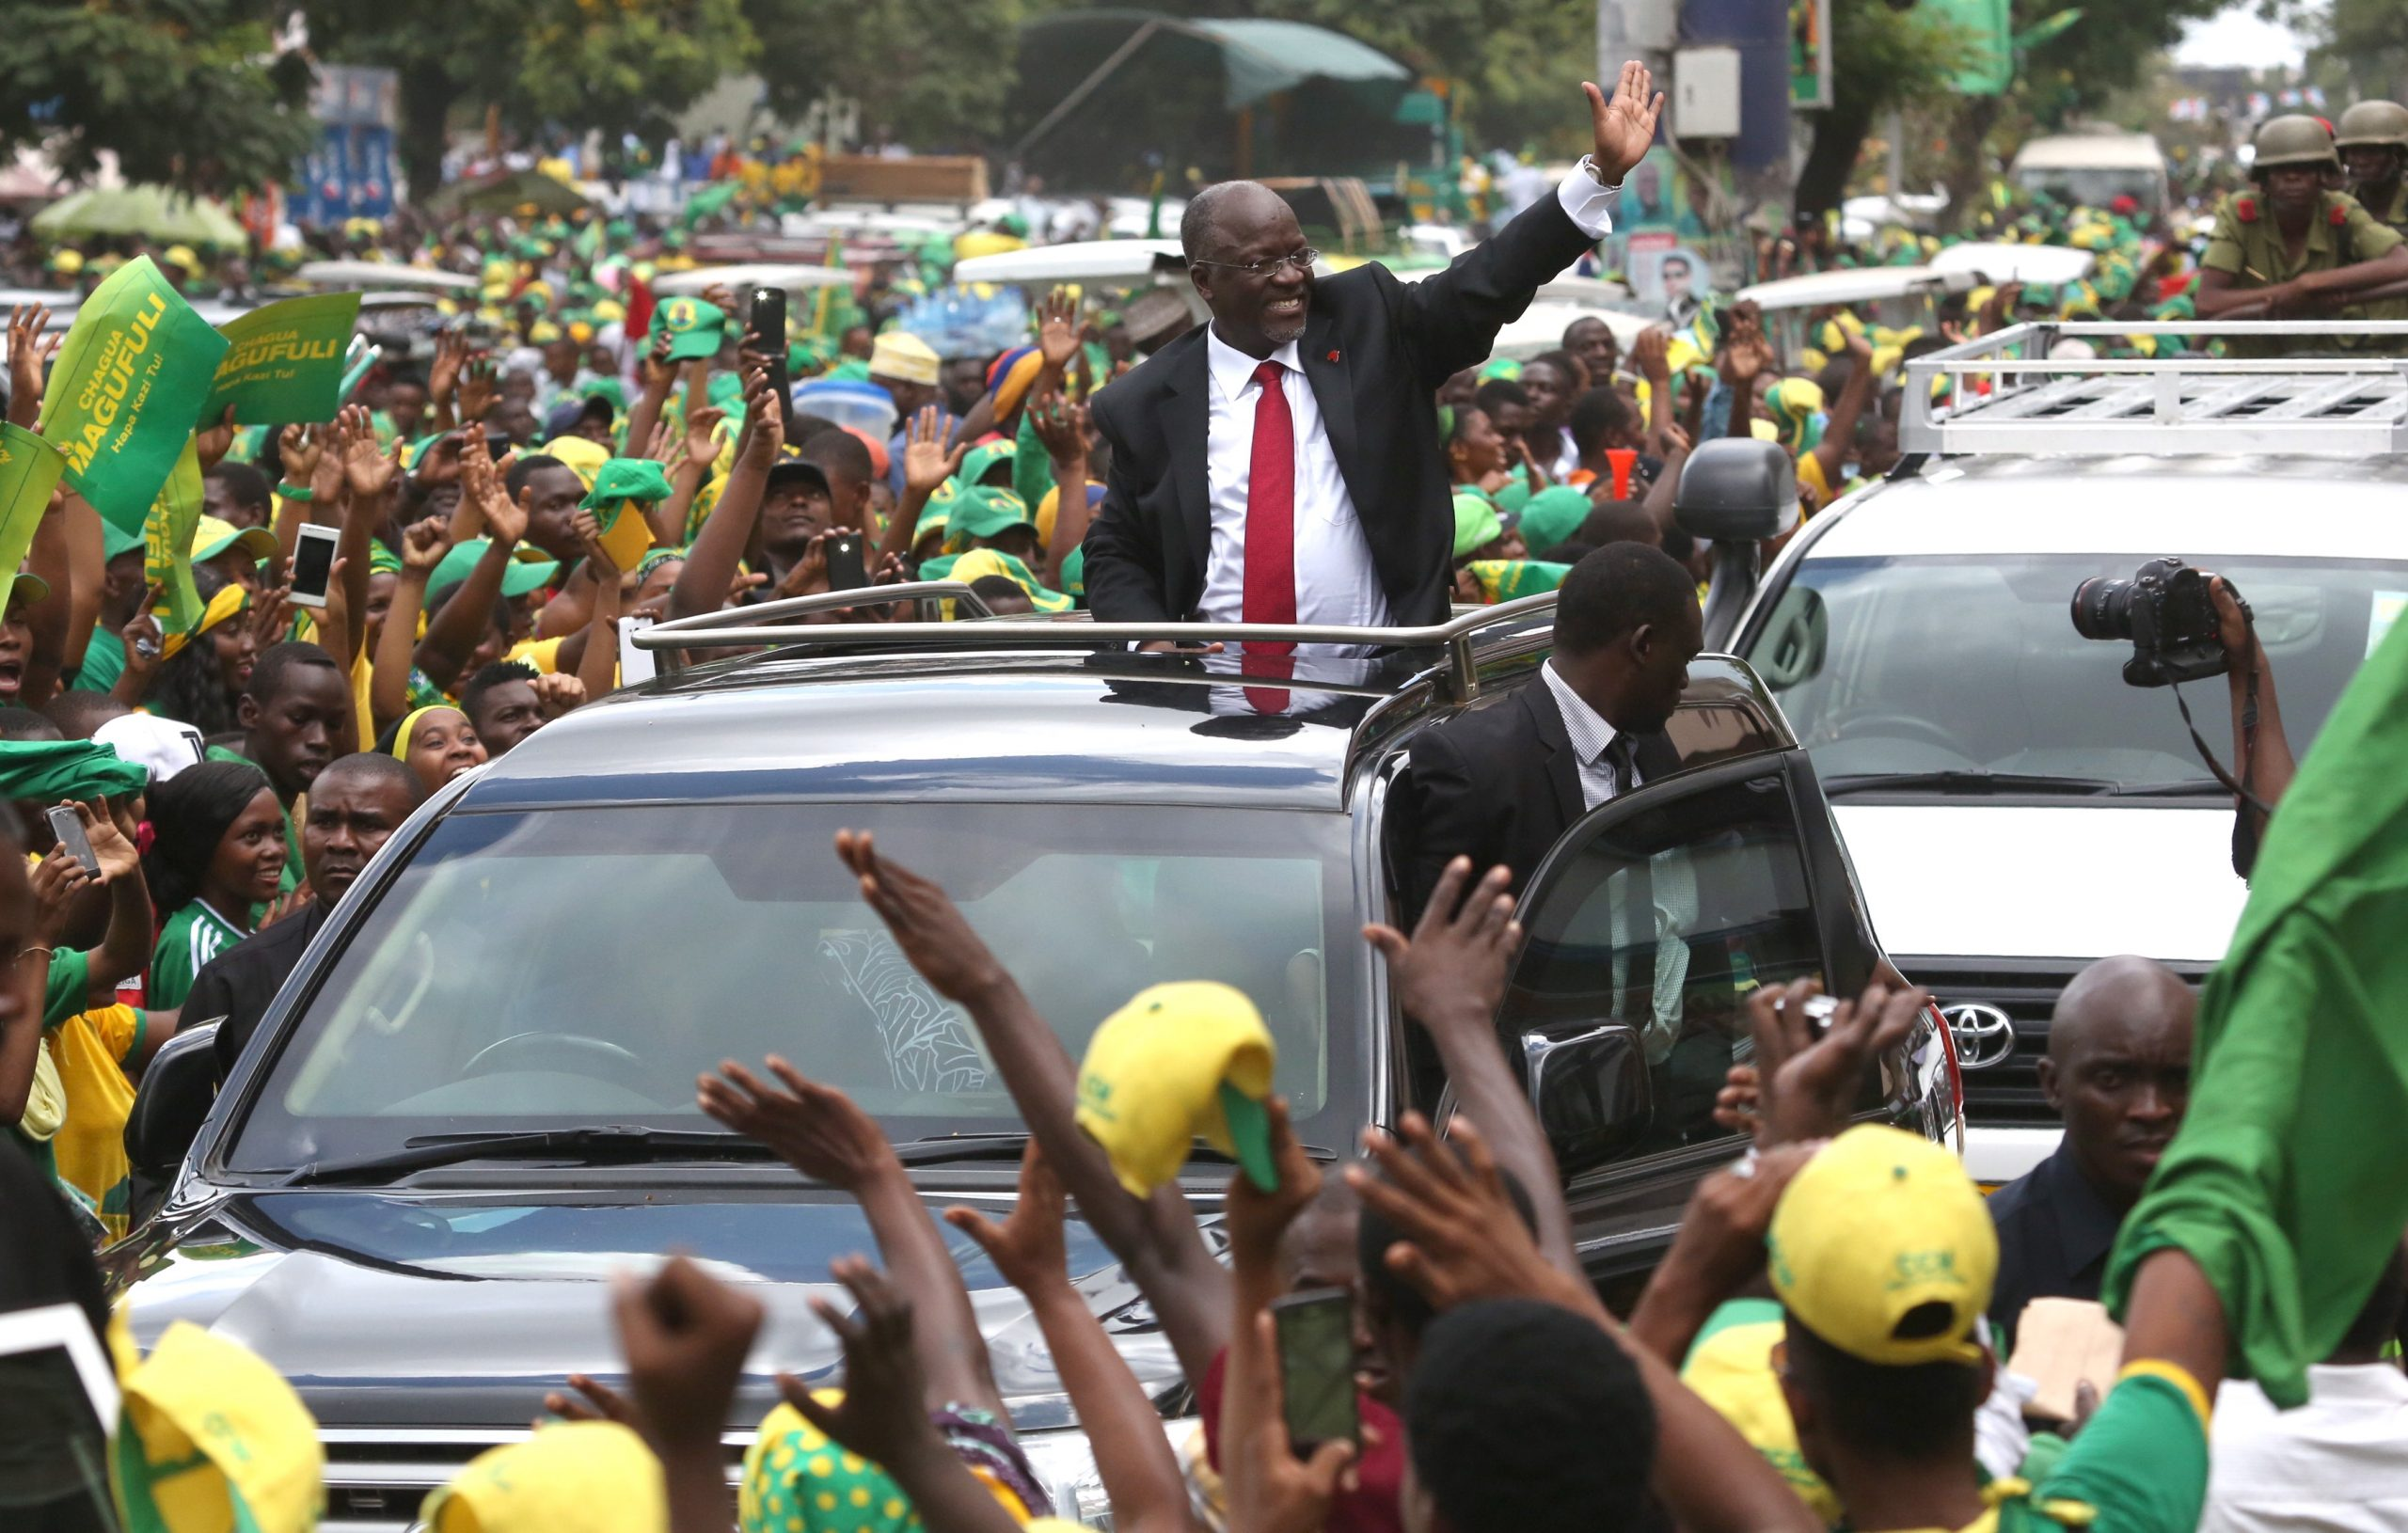 President John Magufuli expands authoritarian policies to constrain  opposition, consolidate power within ruling CCM party ahead of October  elections - Tanzania Analysis | MAX Security